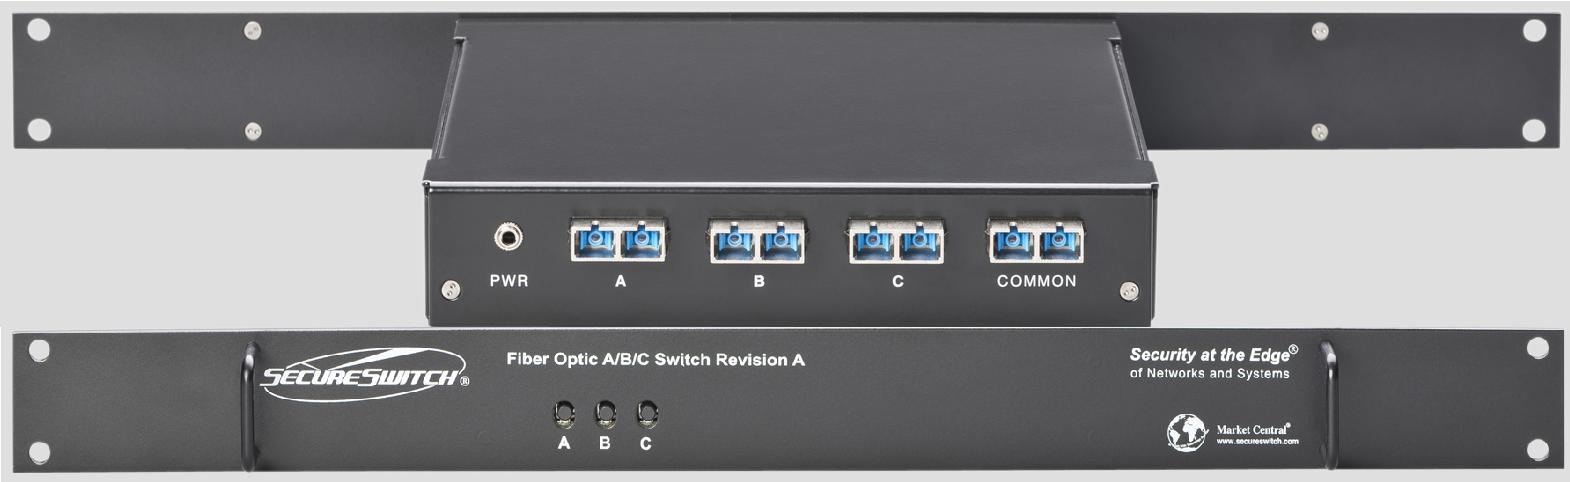 rackmount revA switch